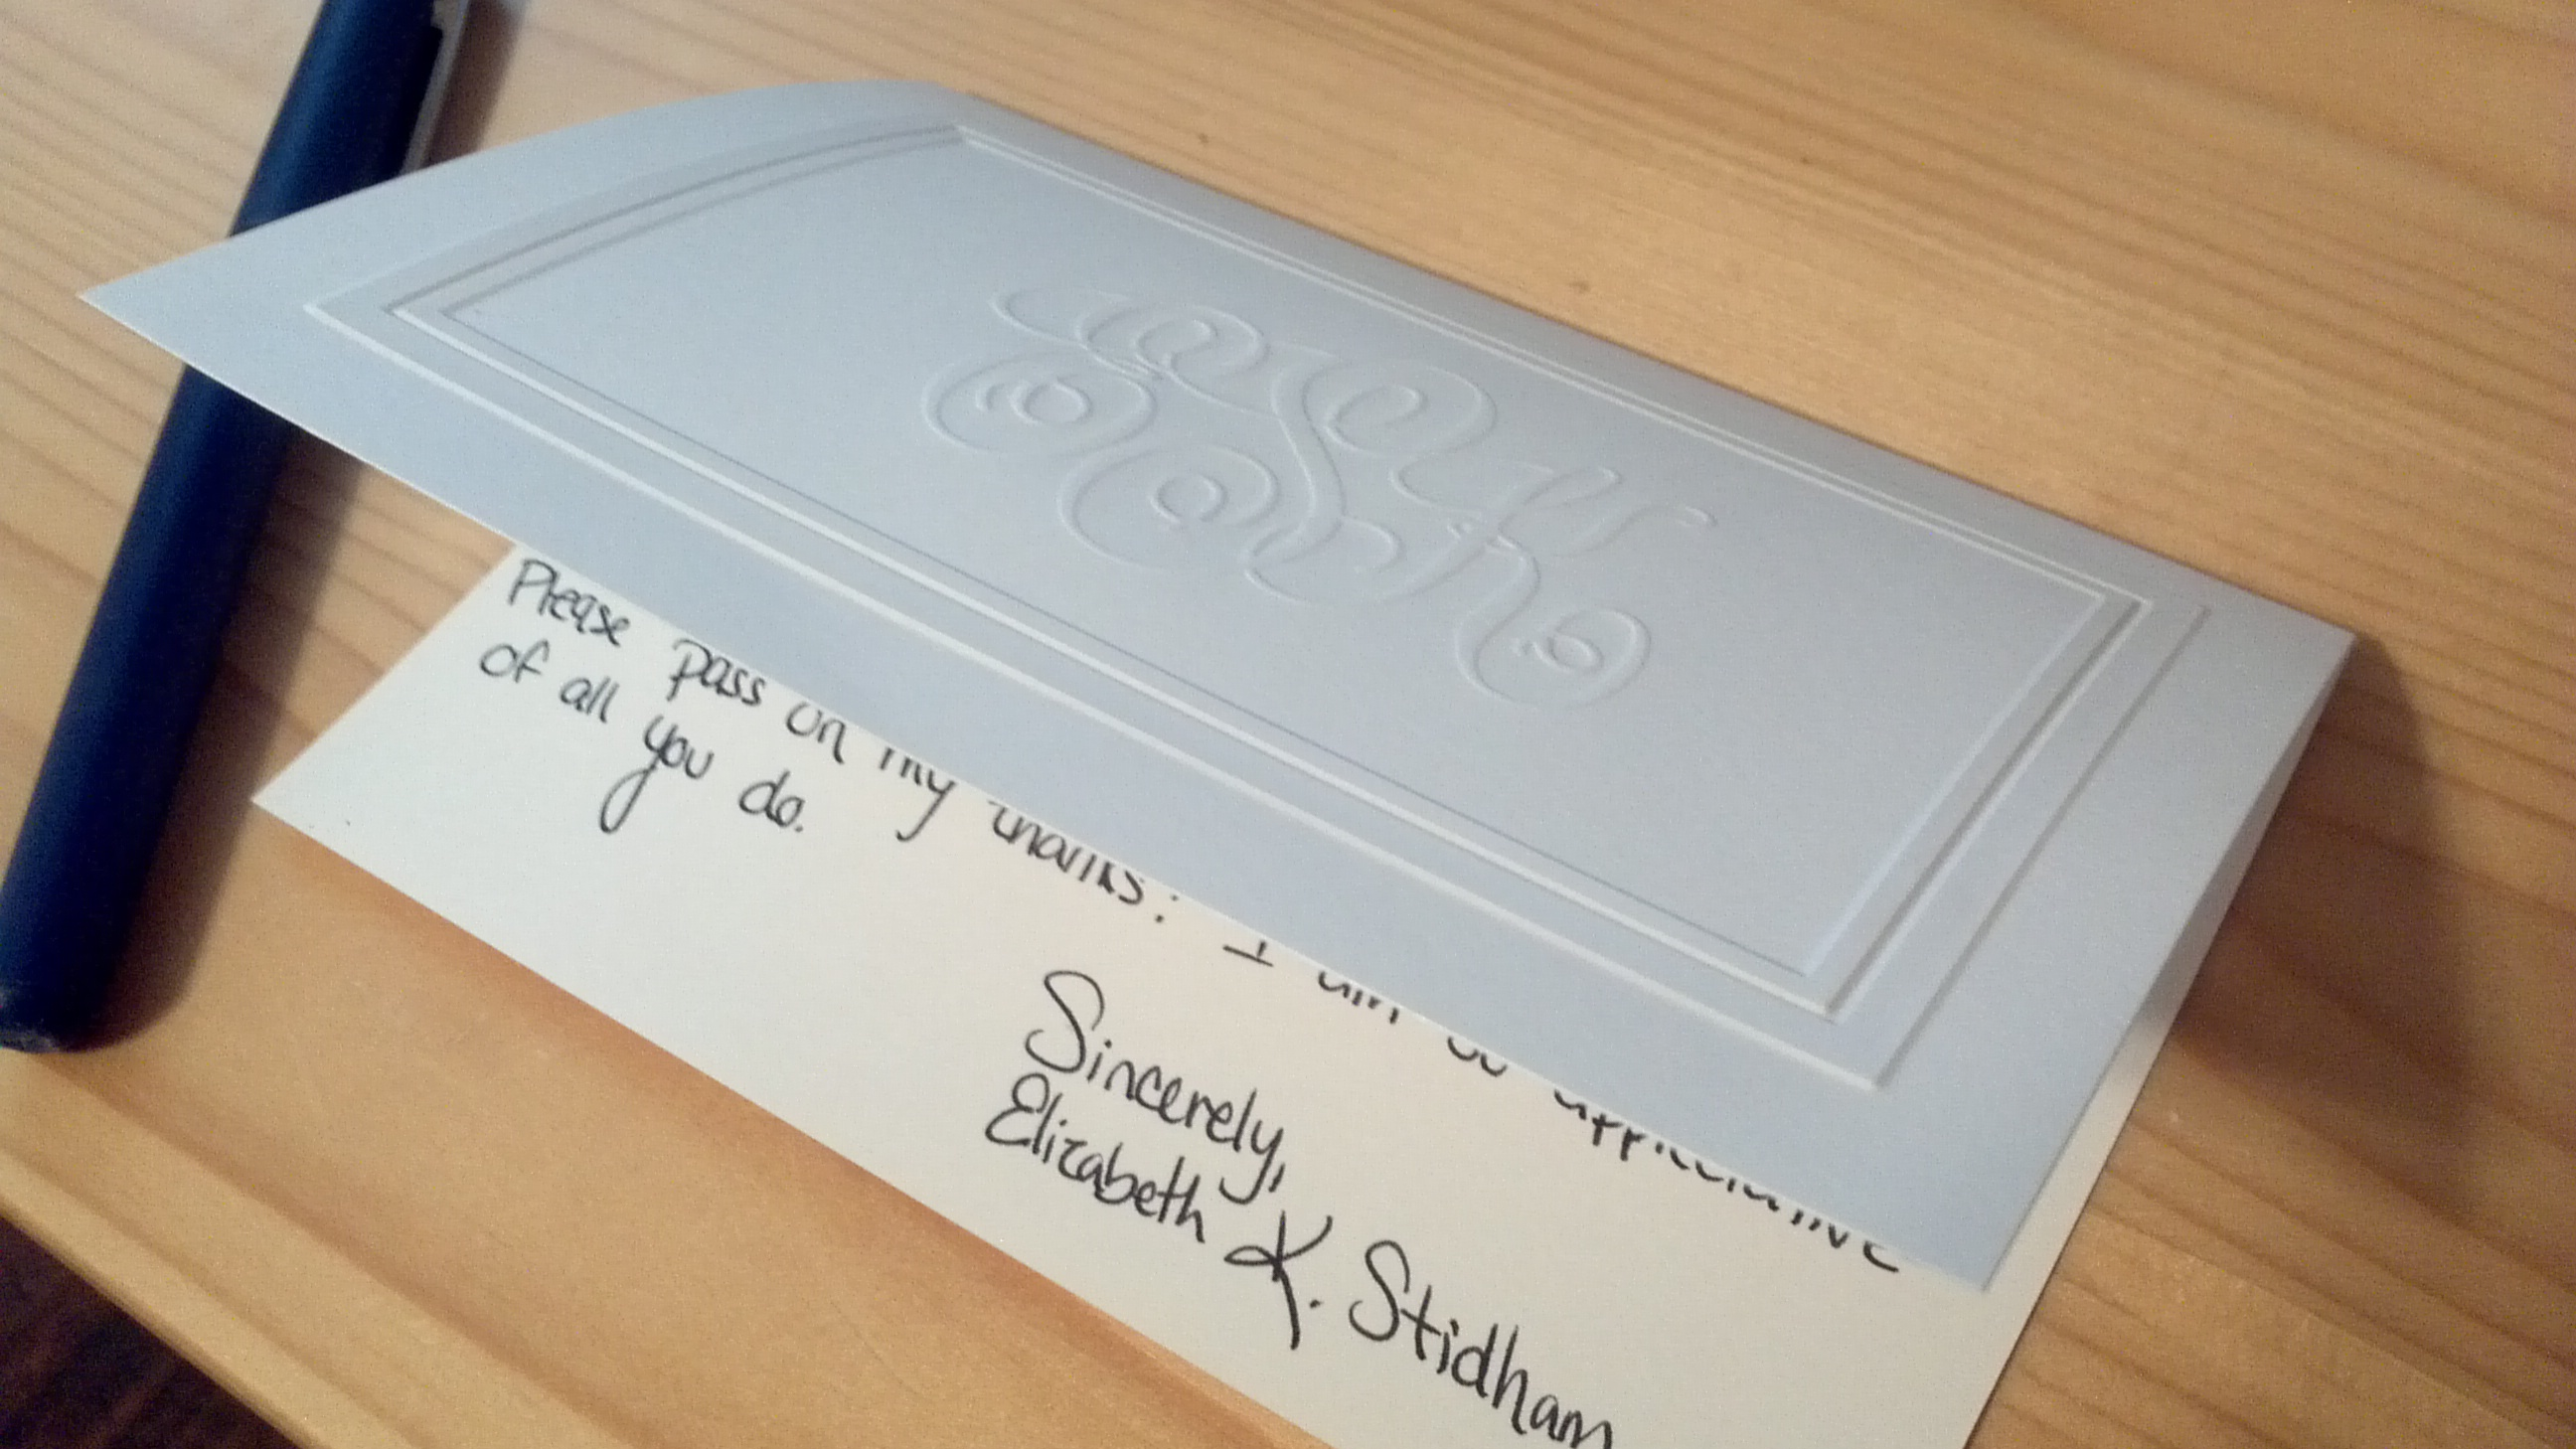 The Handwritten Note Thank You – Writing Thank You Notes